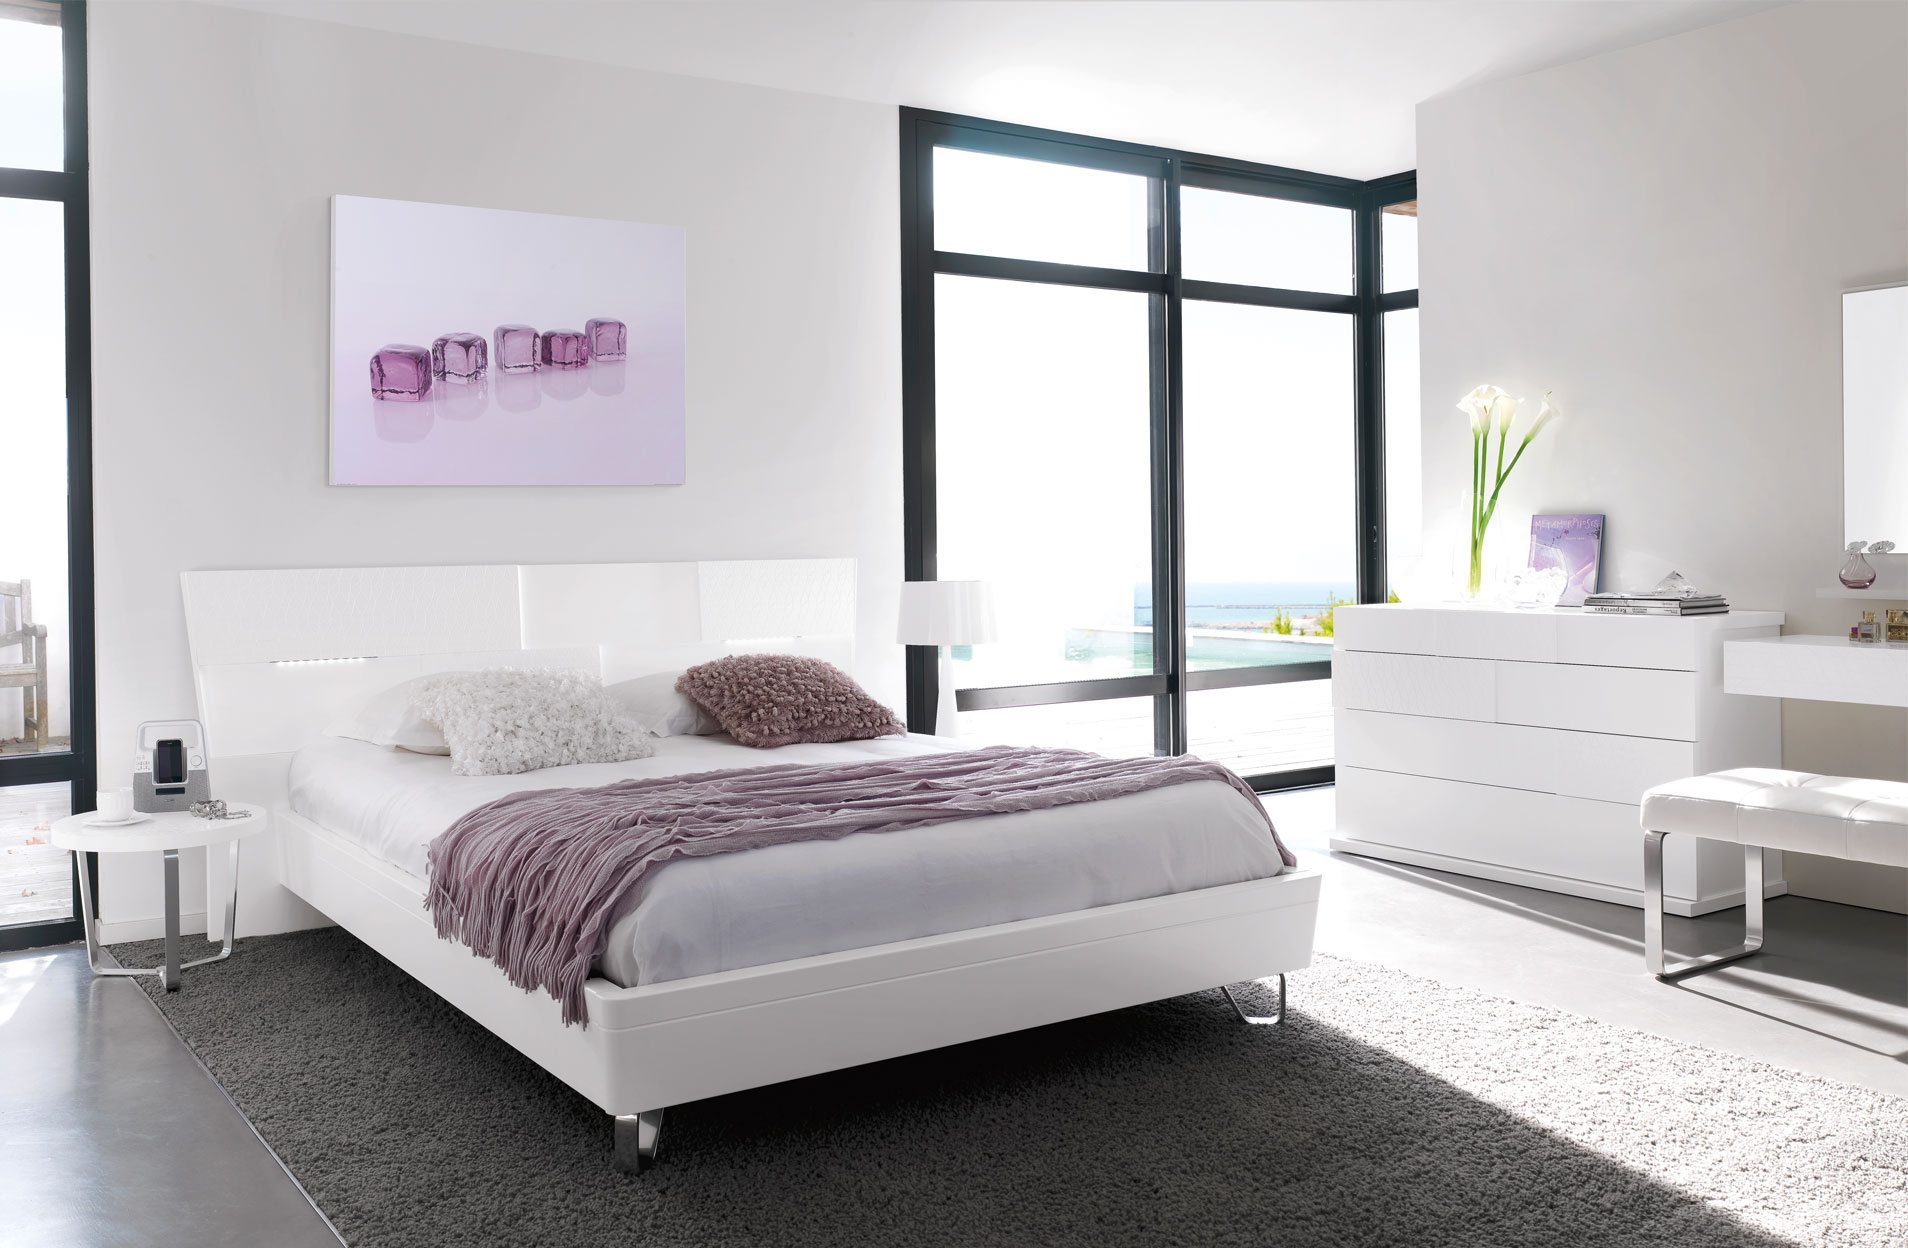 Ambiance d co chambre blanche et grise gautier alisa for Chambre a coucher adulte blanche